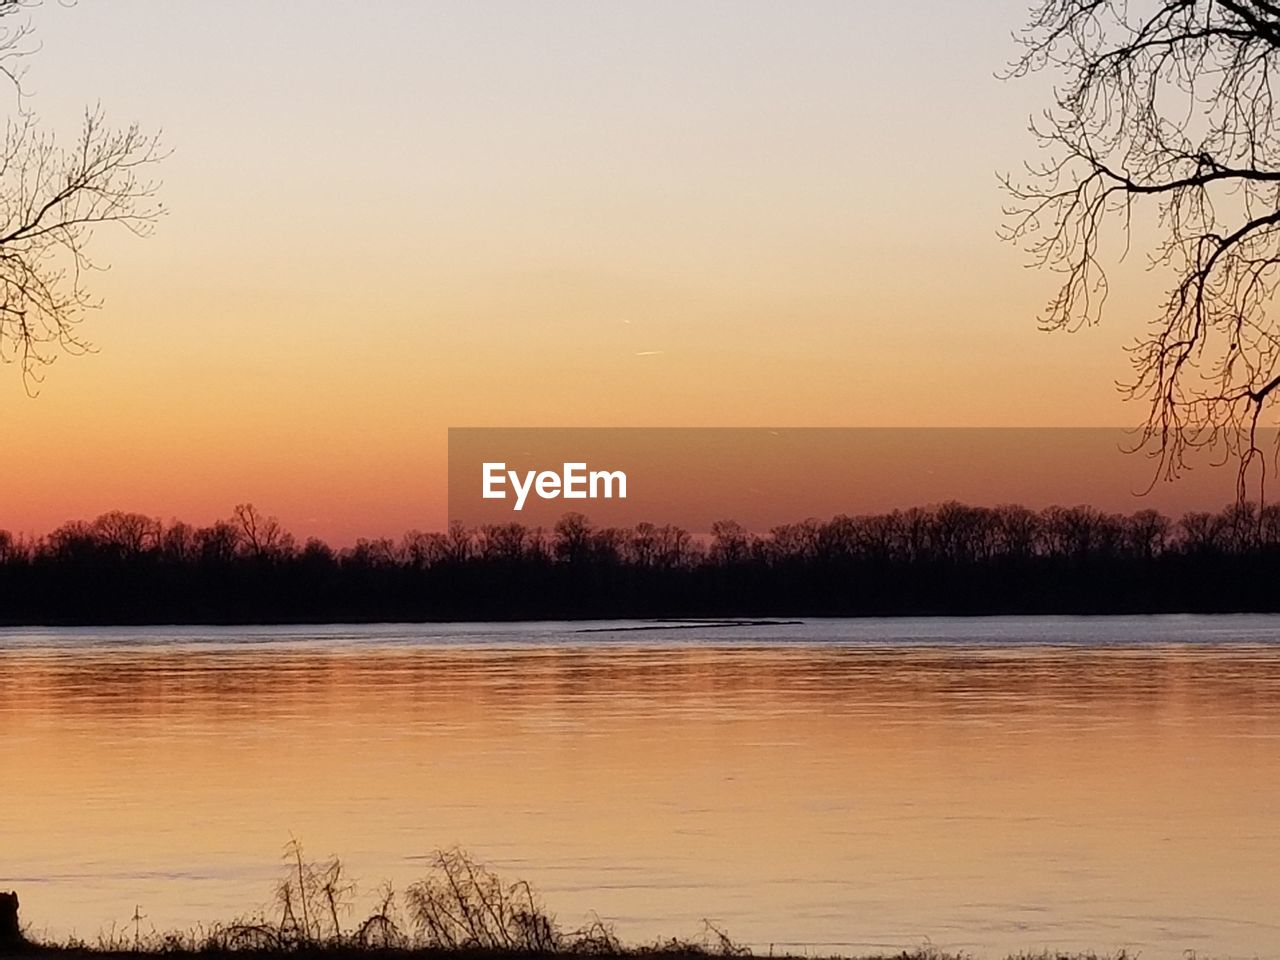 sunset, nature, beauty in nature, tree, scenics, tranquility, water, tranquil scene, lake, reflection, no people, orange color, sky, silhouette, outdoors, bare tree